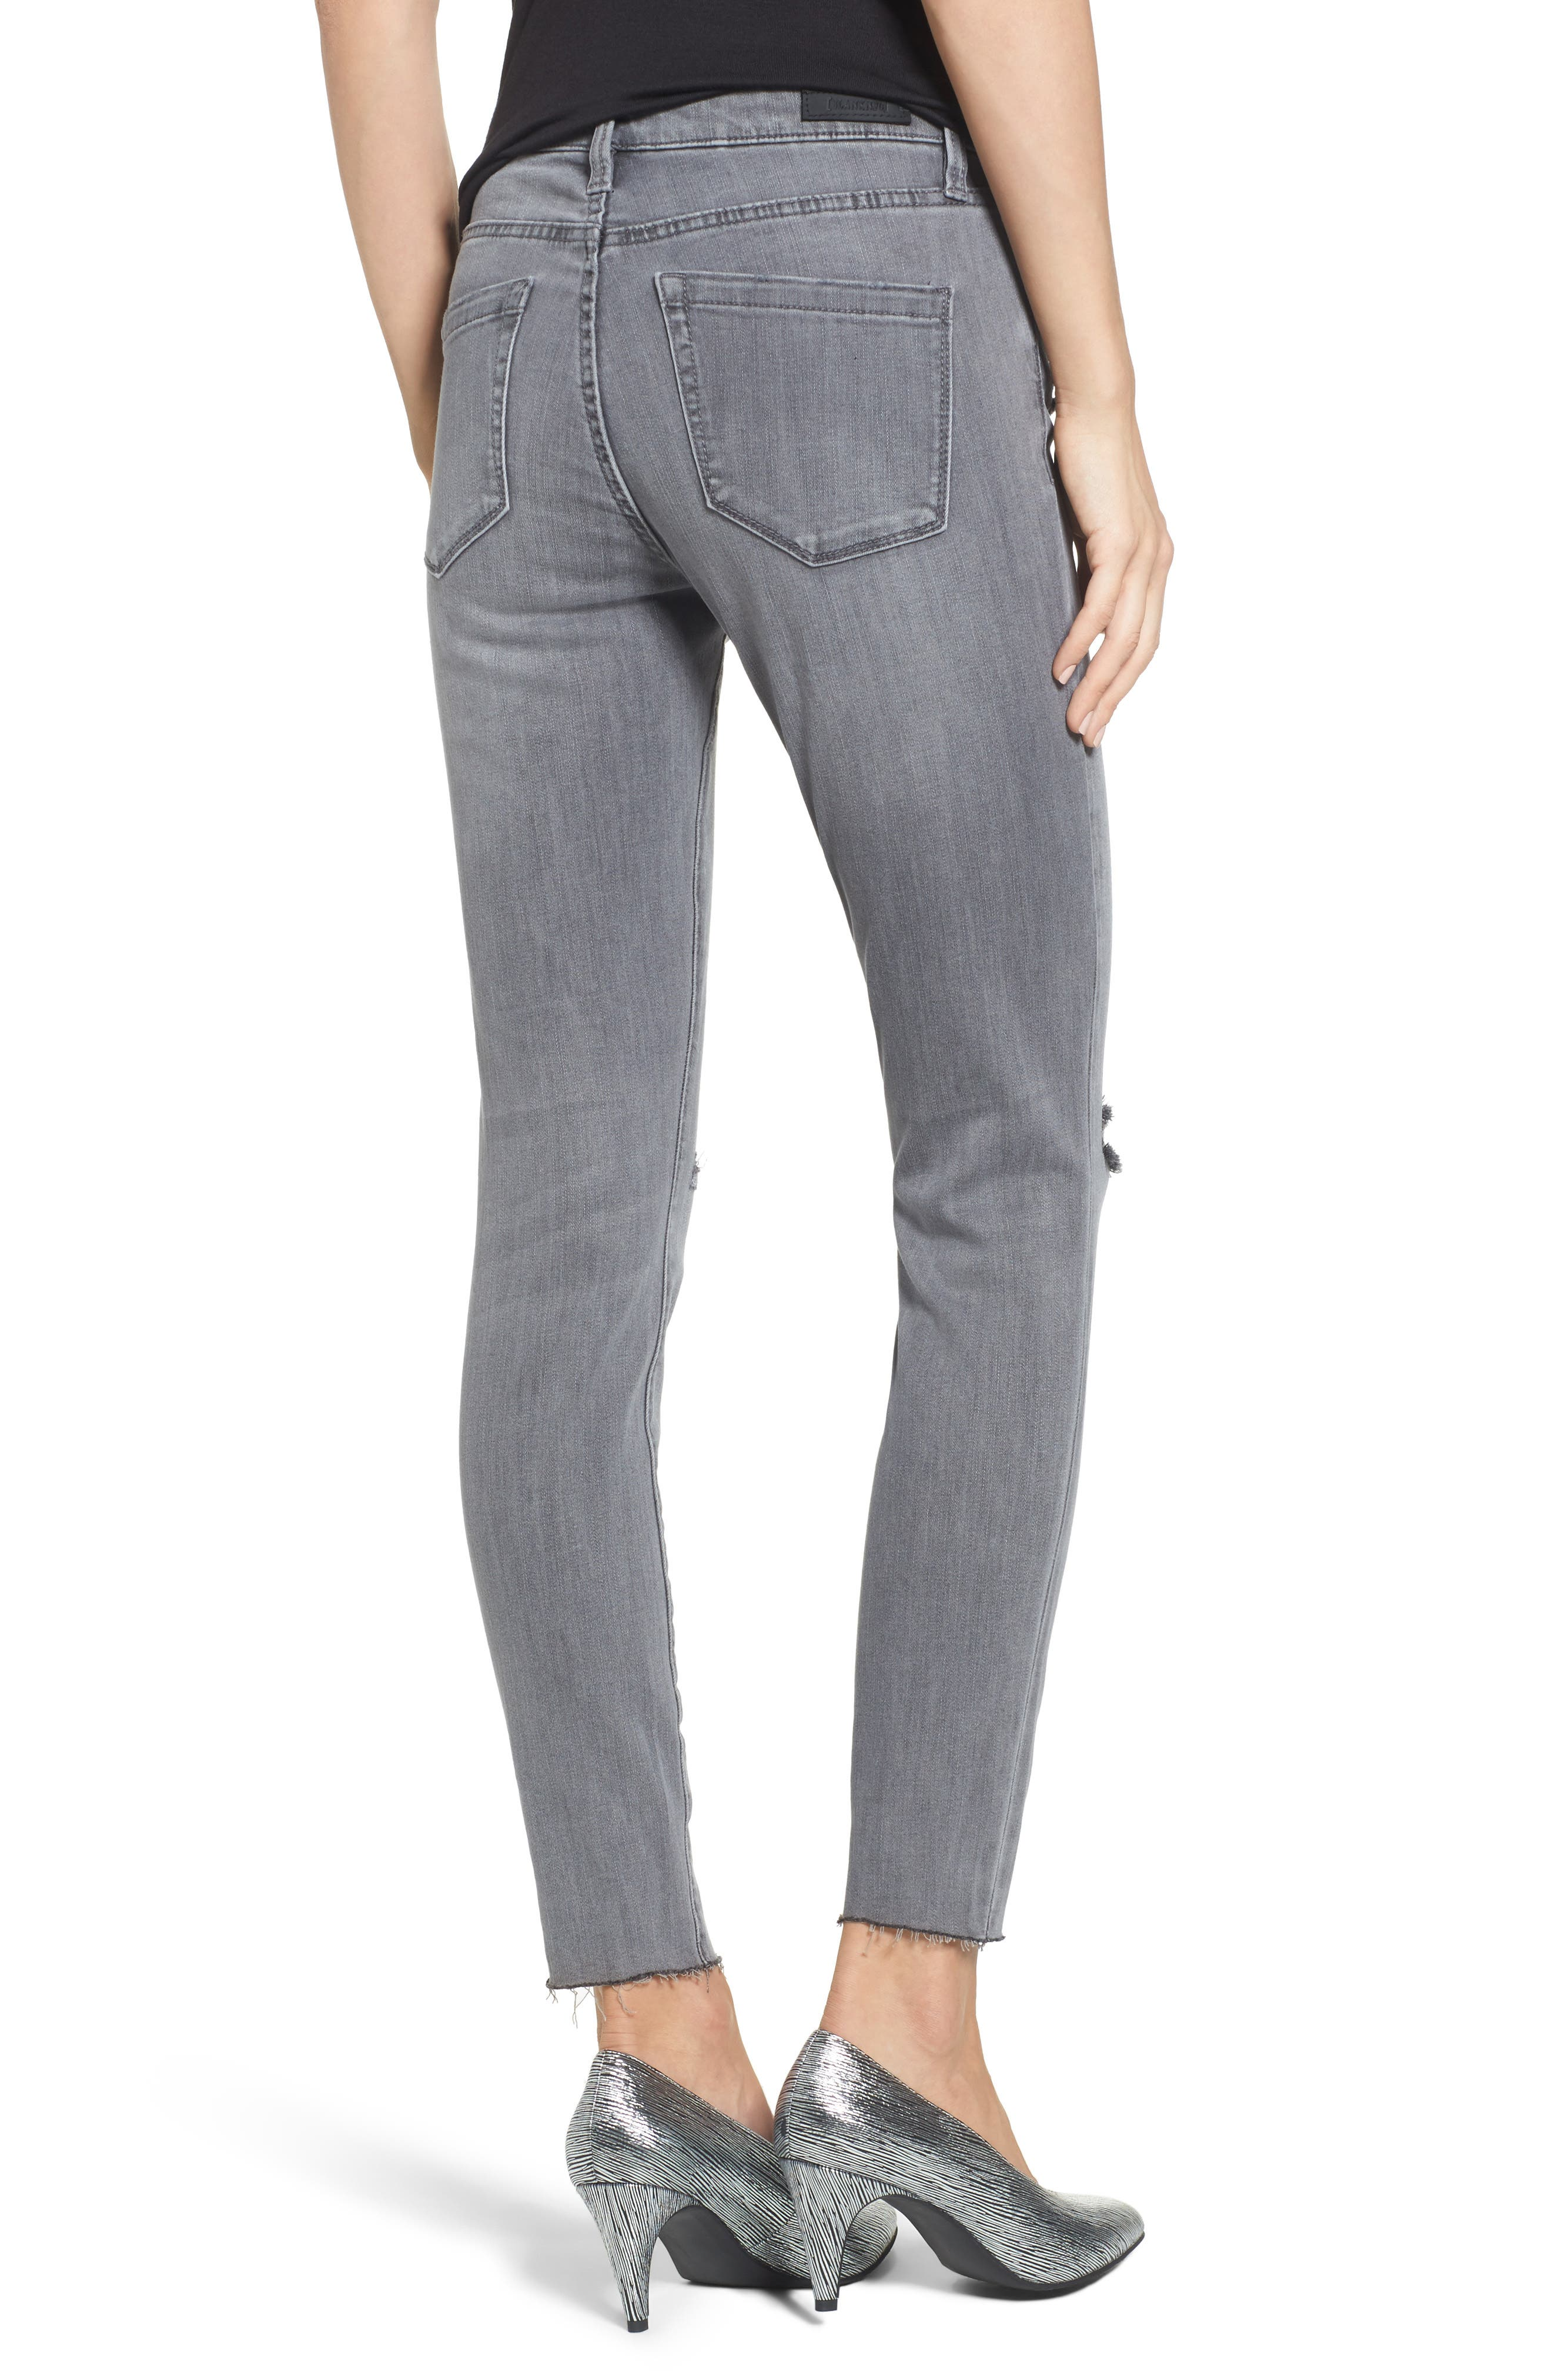 Tequila Royale Skinny Jeans,                             Alternate thumbnail 2, color,